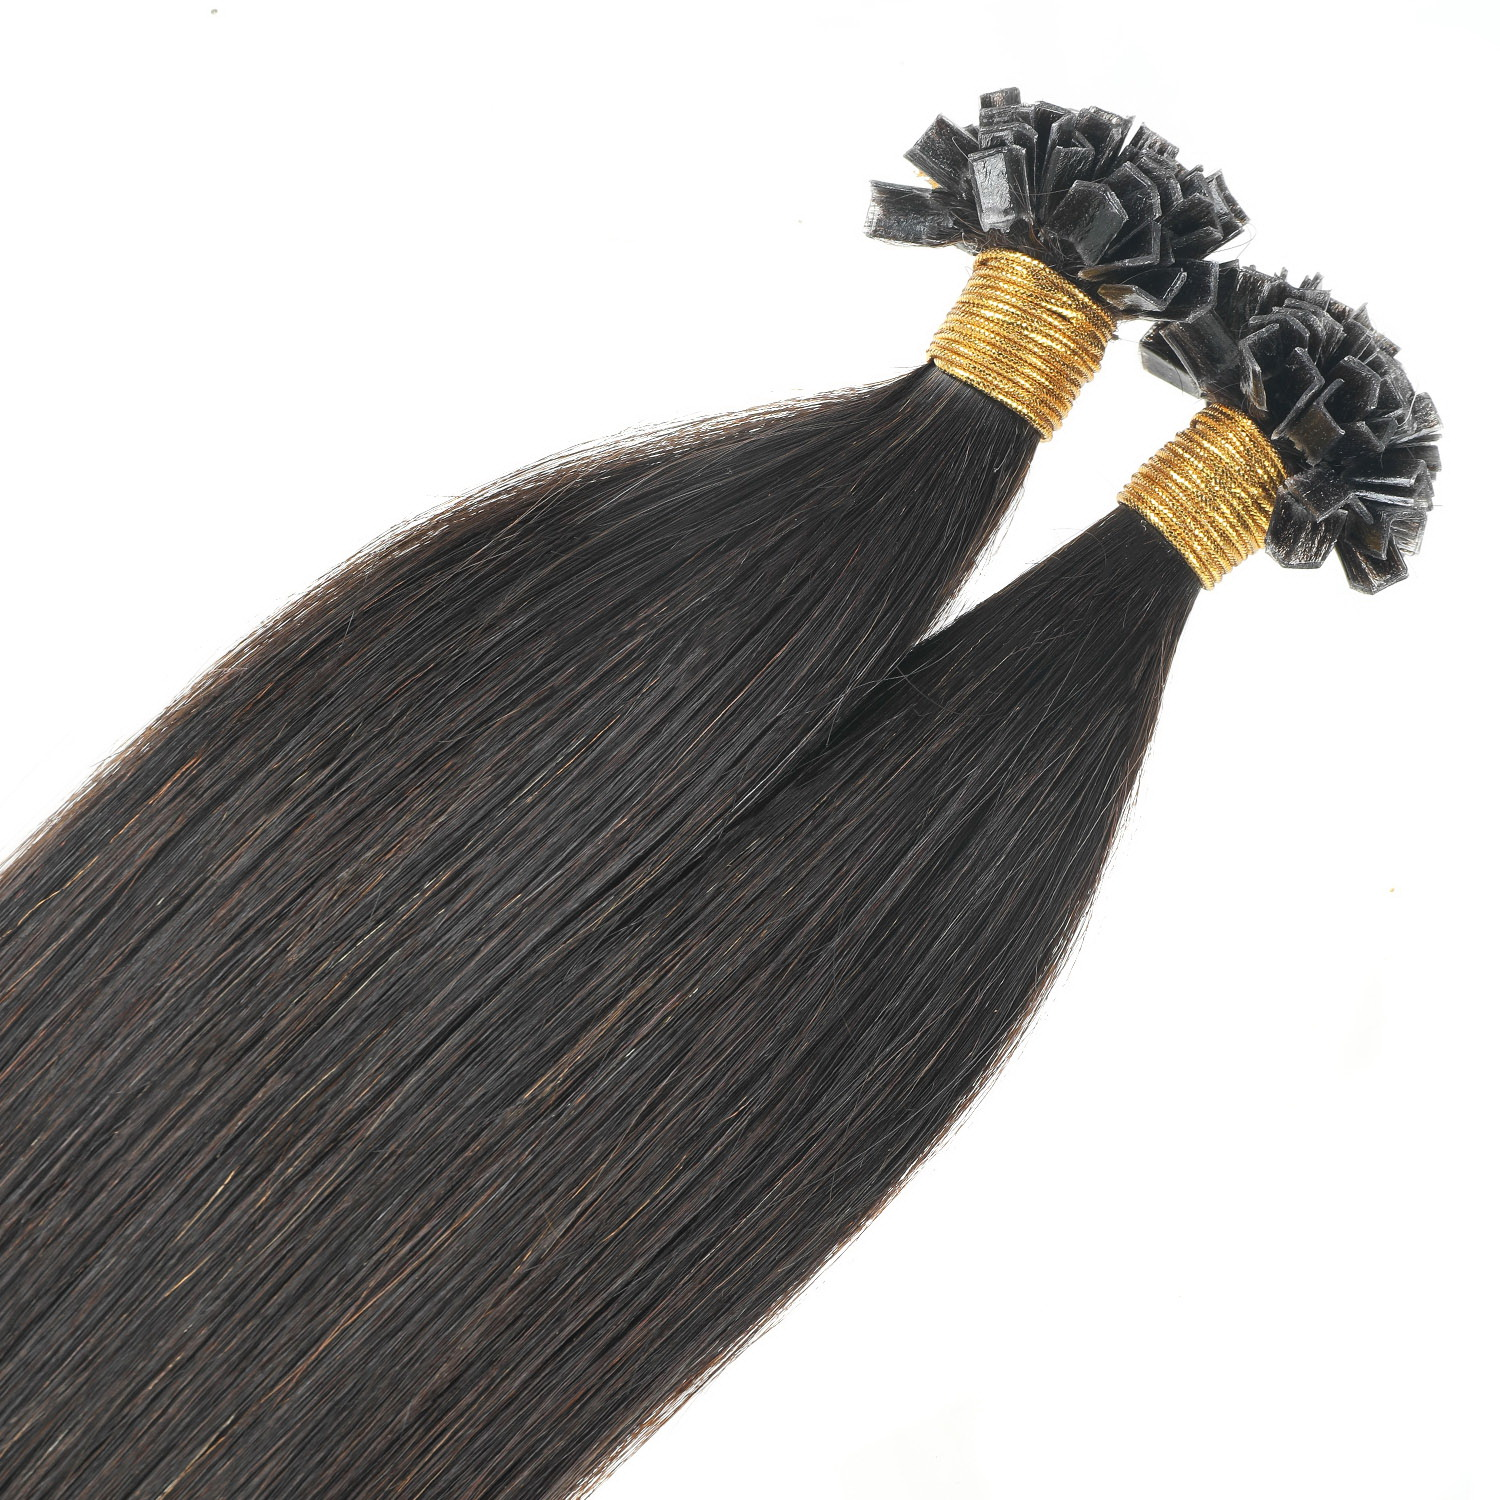 V tip hair extension,100% eredeti haj 100gr,color 0#,(natural)